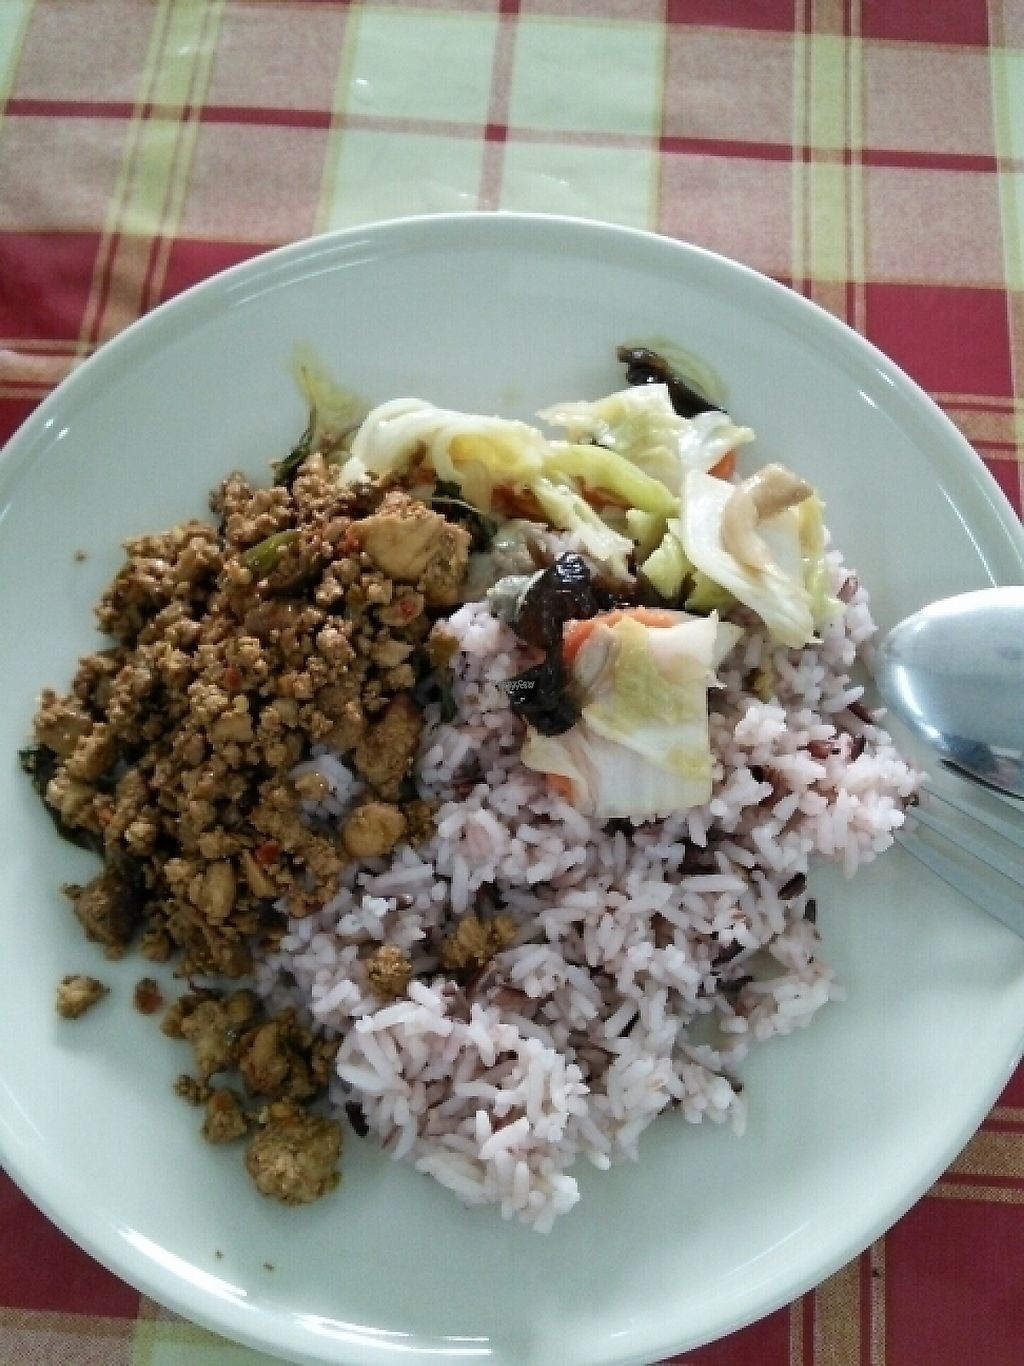 "Photo of Vegetarian Food  by <a href=""/members/profile/NomadVivien"">NomadVivien</a> <br/>2 toppings with brown rice 30 baht <br/> November 13, 2016  - <a href='/contact/abuse/image/82354/189301'>Report</a>"